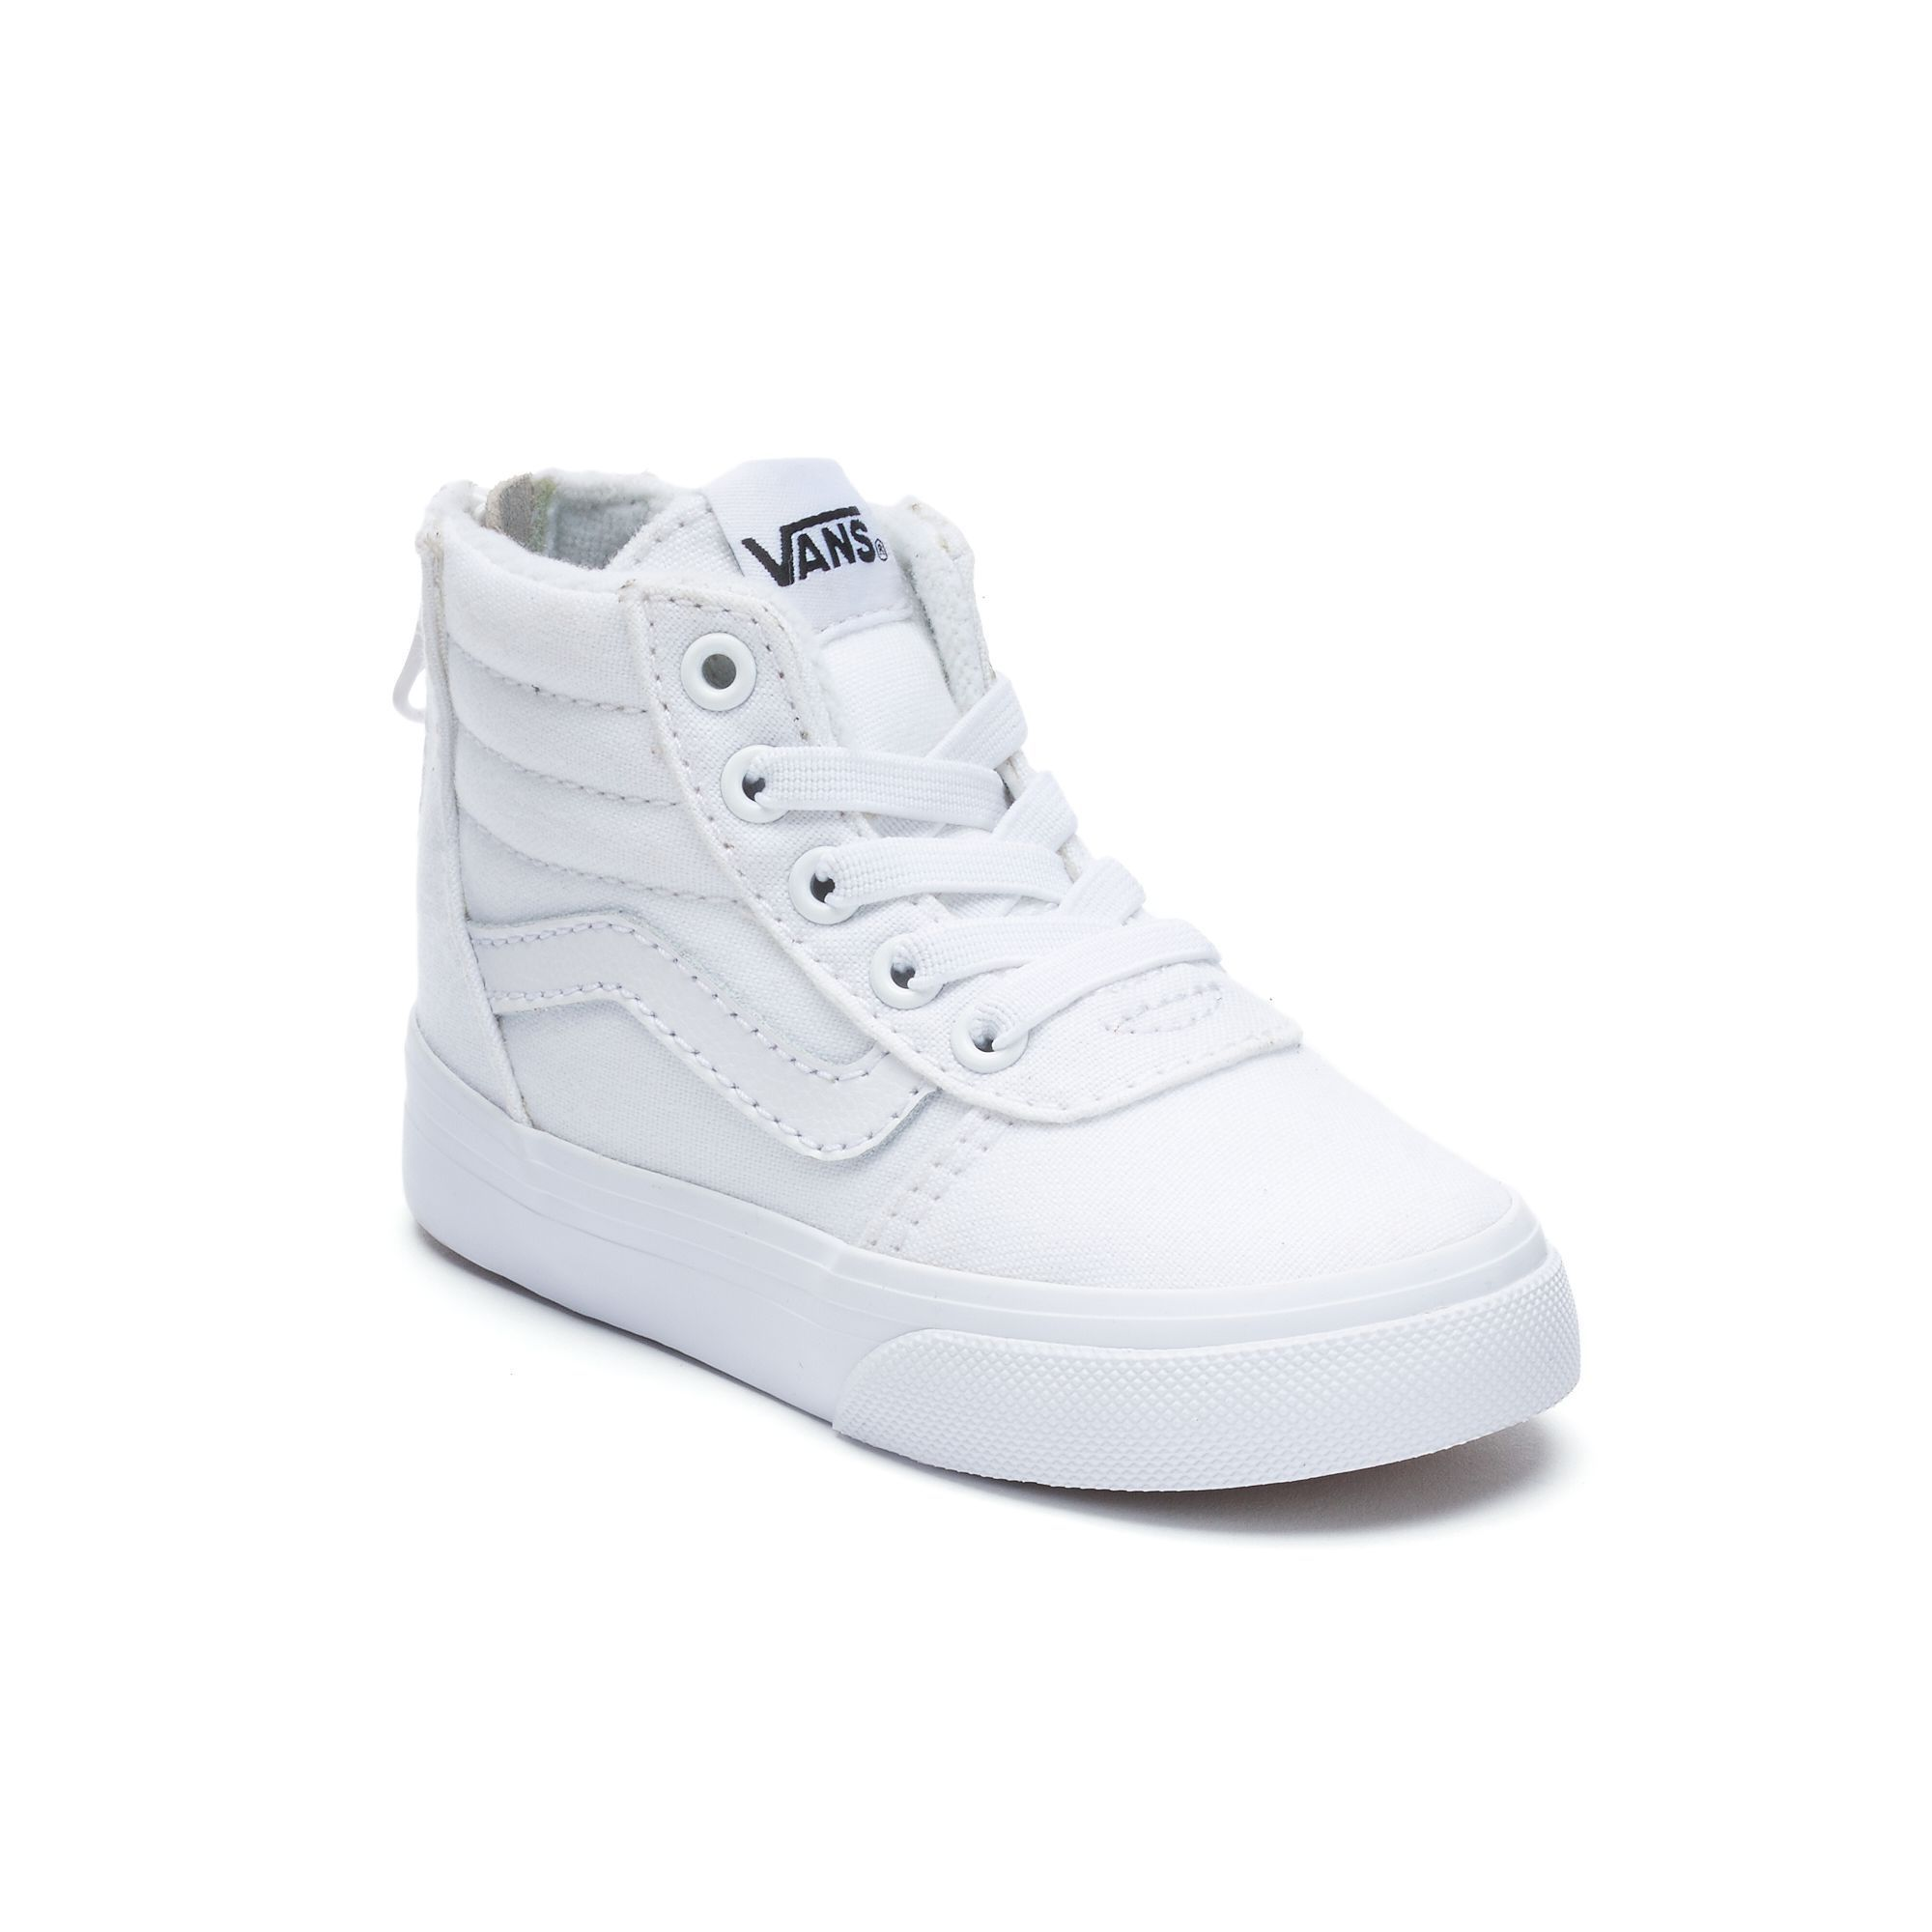 3023704608 Vans Ward Zip Toddlers  High Top Sneakers